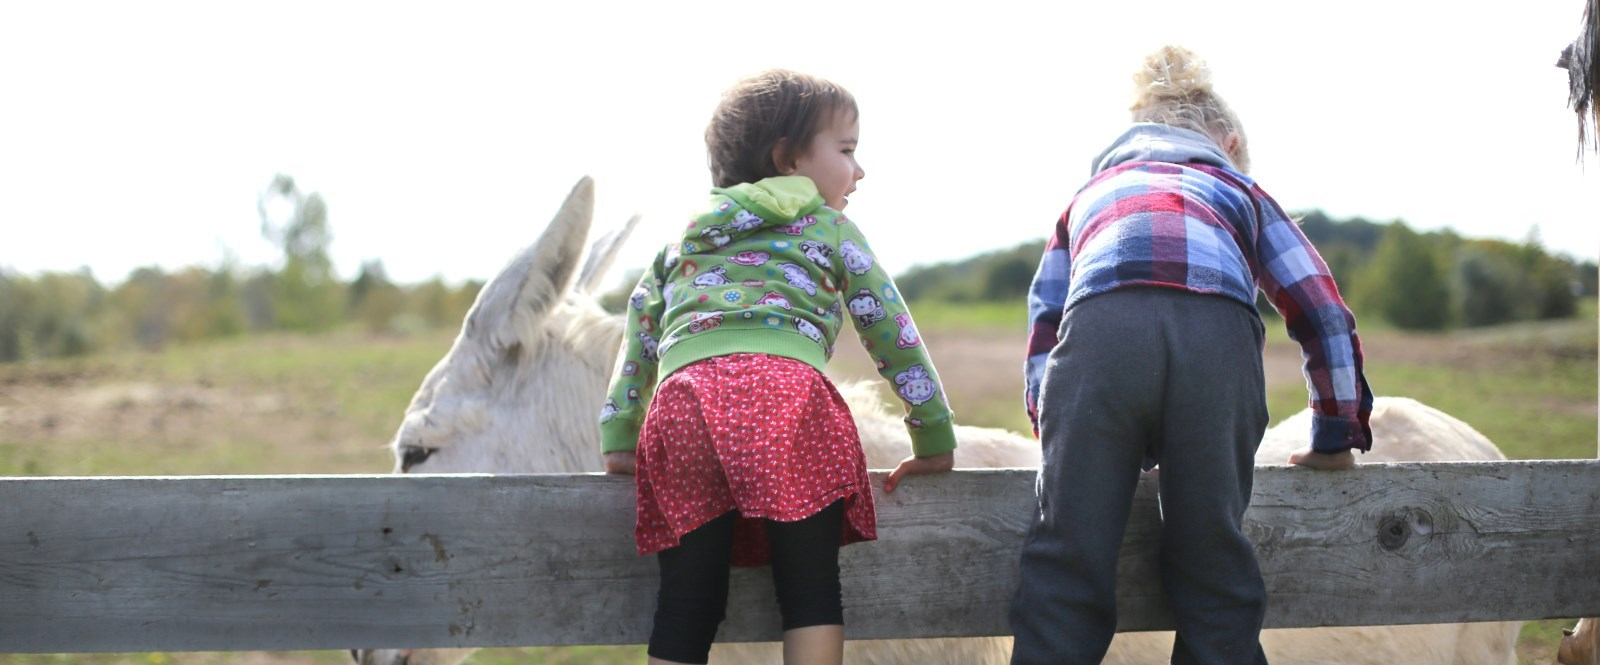 two children standing on a fence